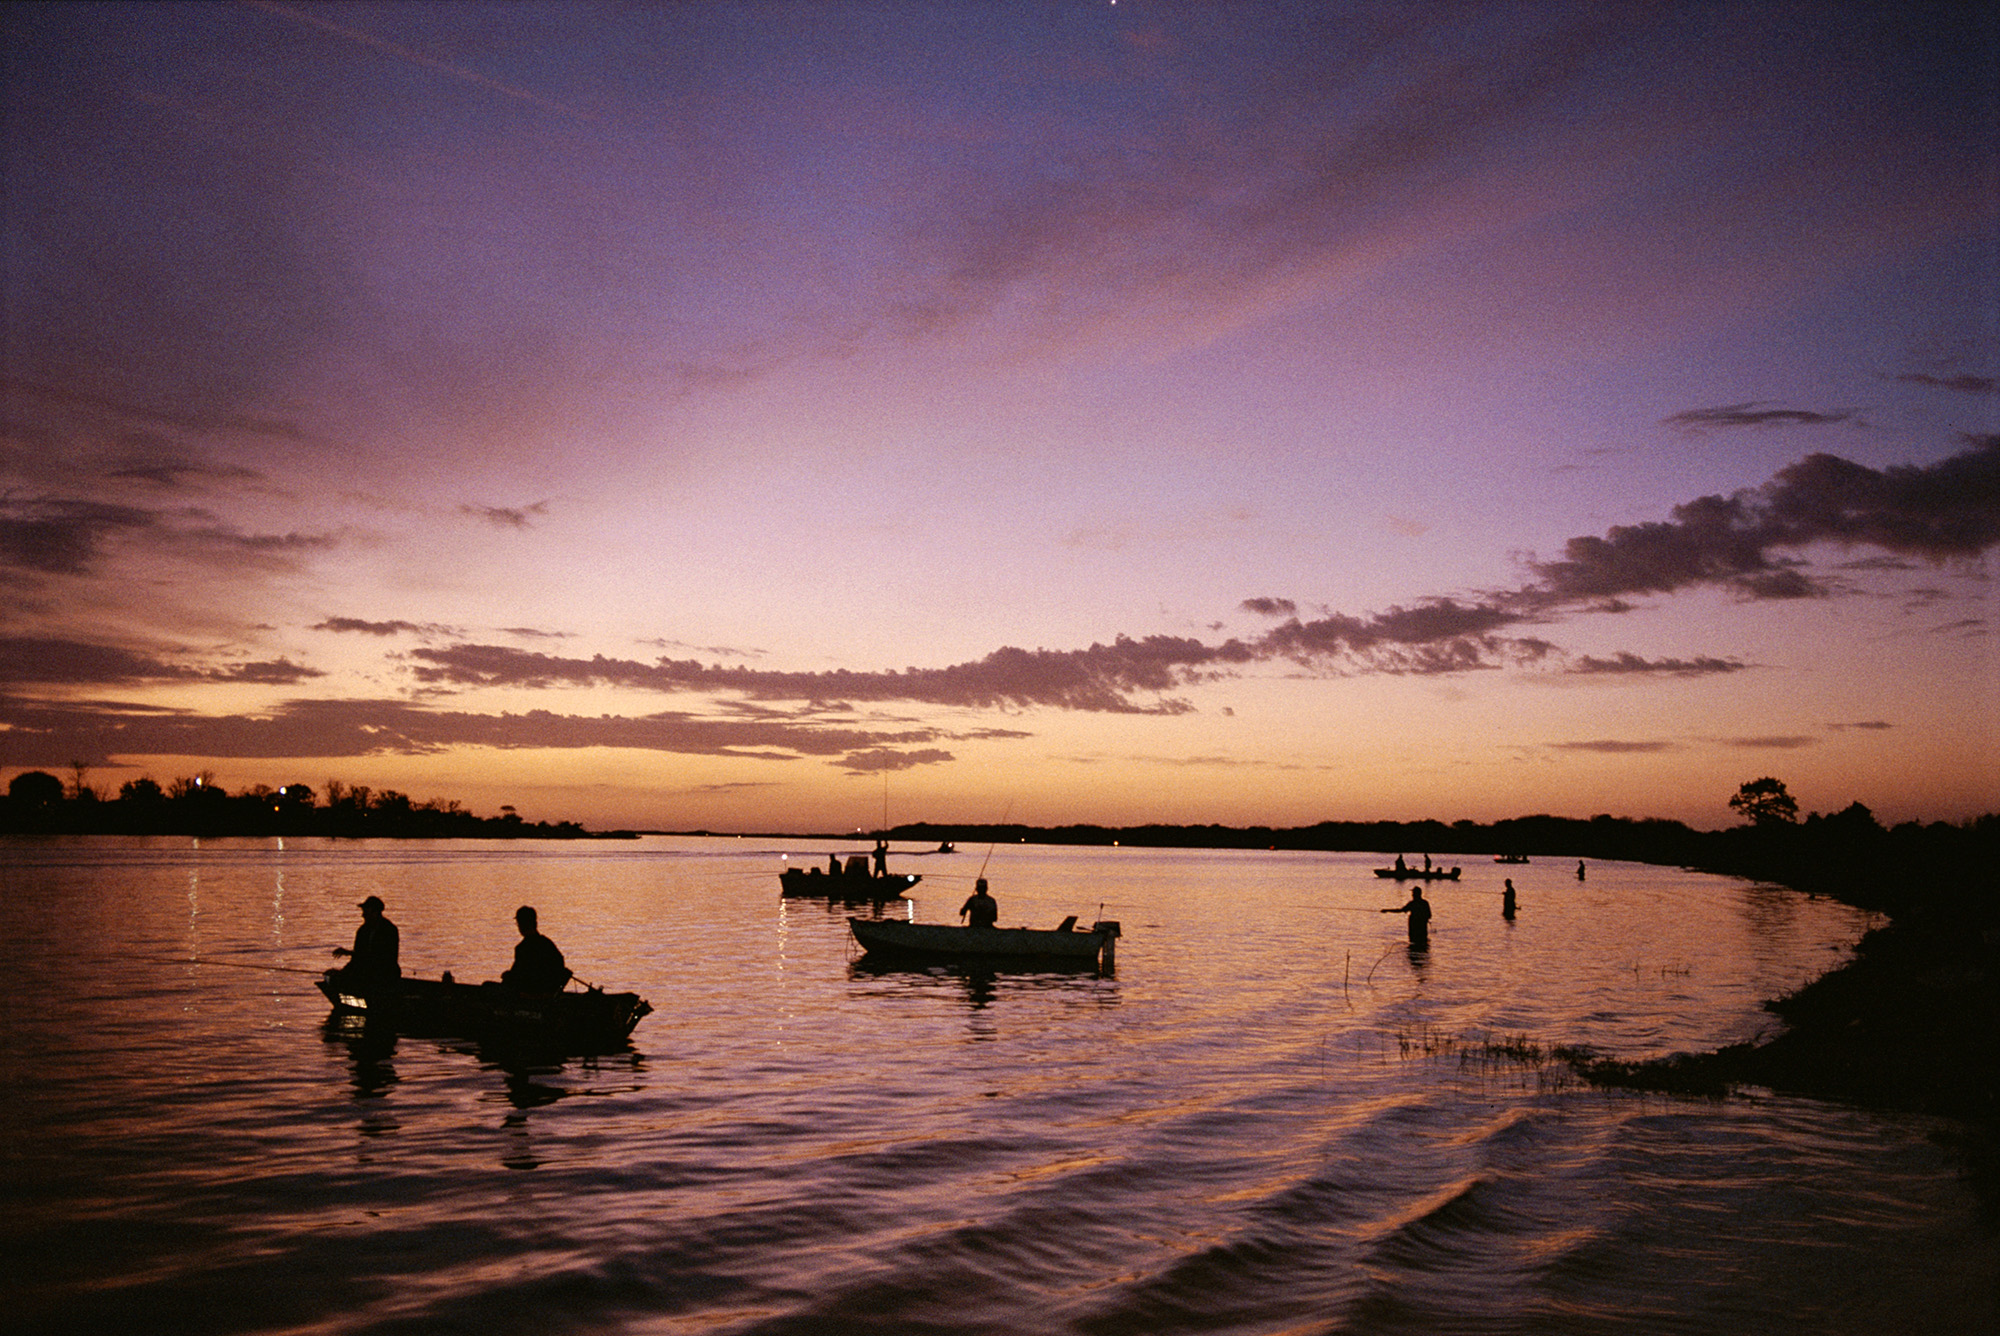 People fish on Florida's Kissimmee River at sunset.